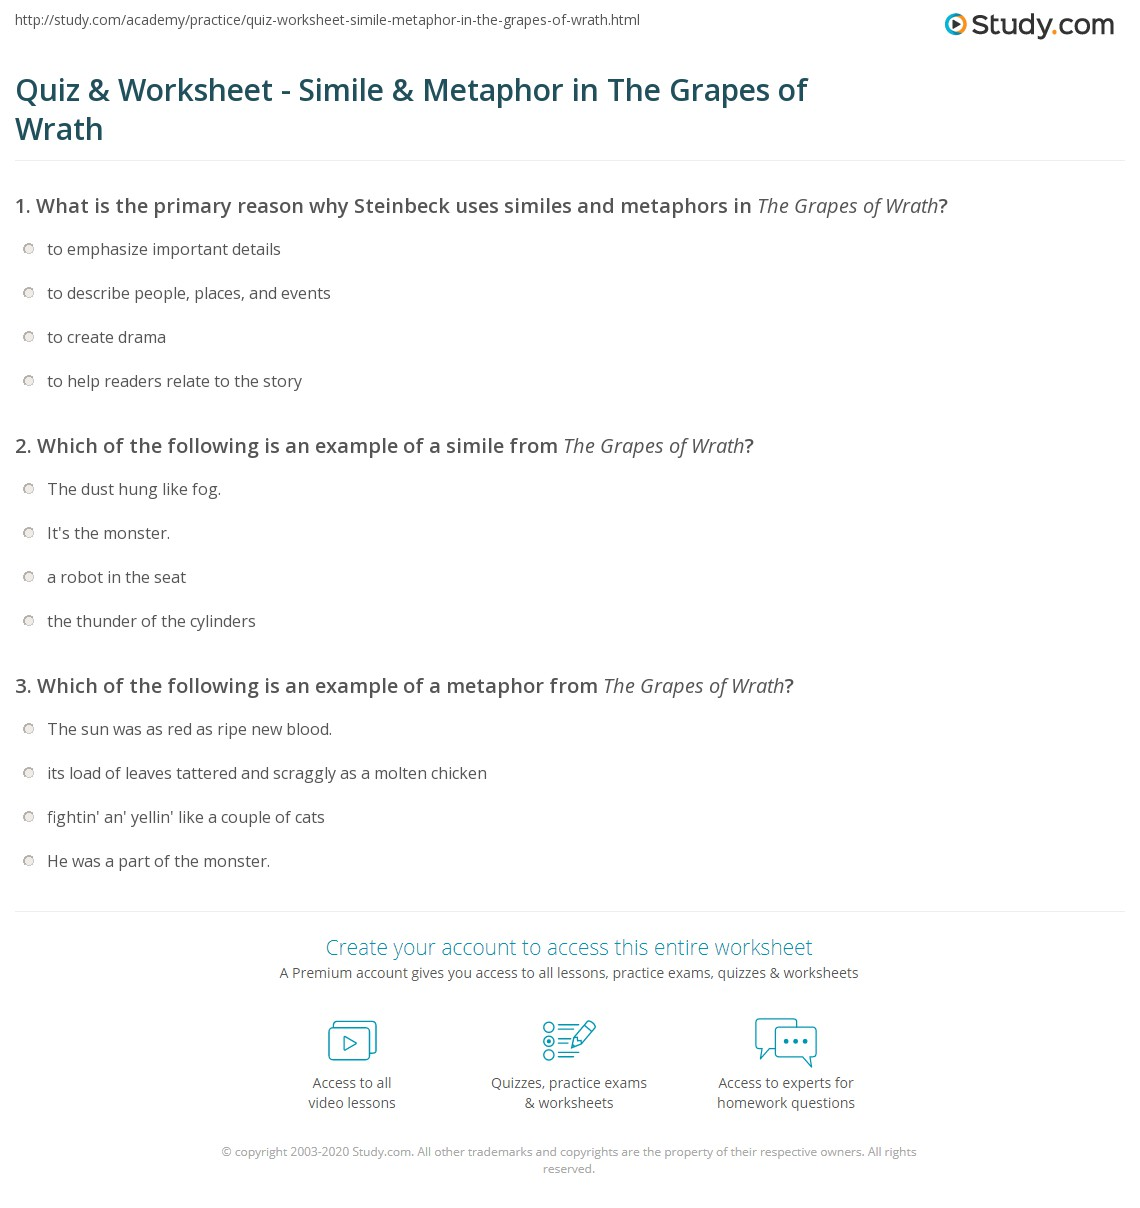 worksheet Metaphors And Similes Worksheets quiz worksheet simile metaphor in the grapes of wrath print worksheet